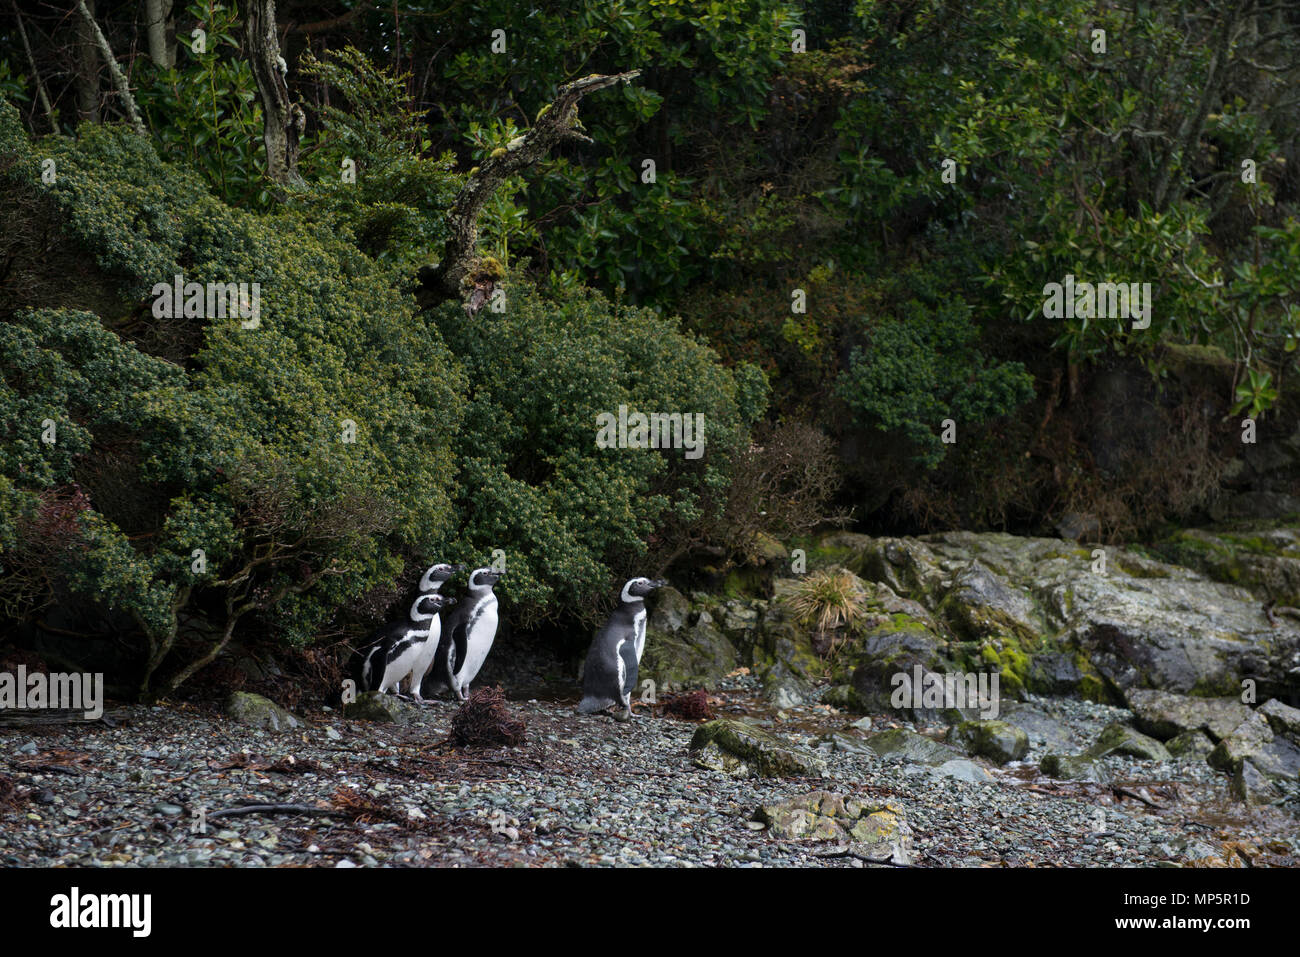 Magellanic Penguins on the edge of forest, at a remote island in Francisco Coloane Marine Reserve, South Chile. - Stock Image